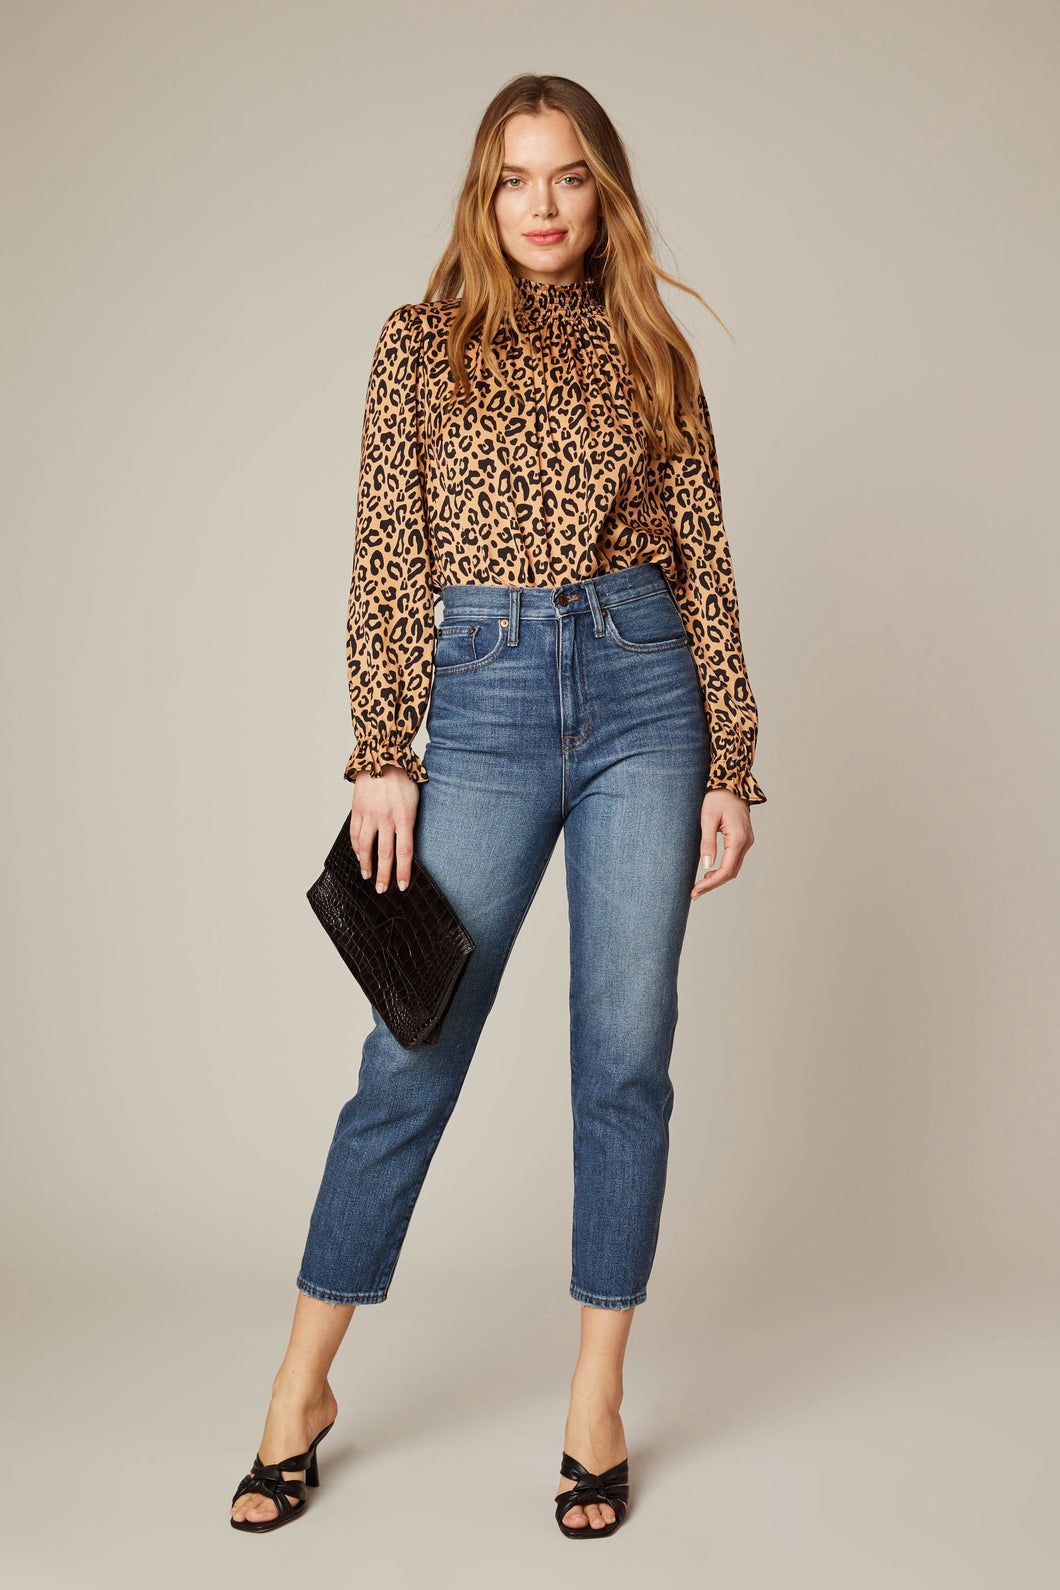 Tucker Stella Top in Kitty Cat Dreamer